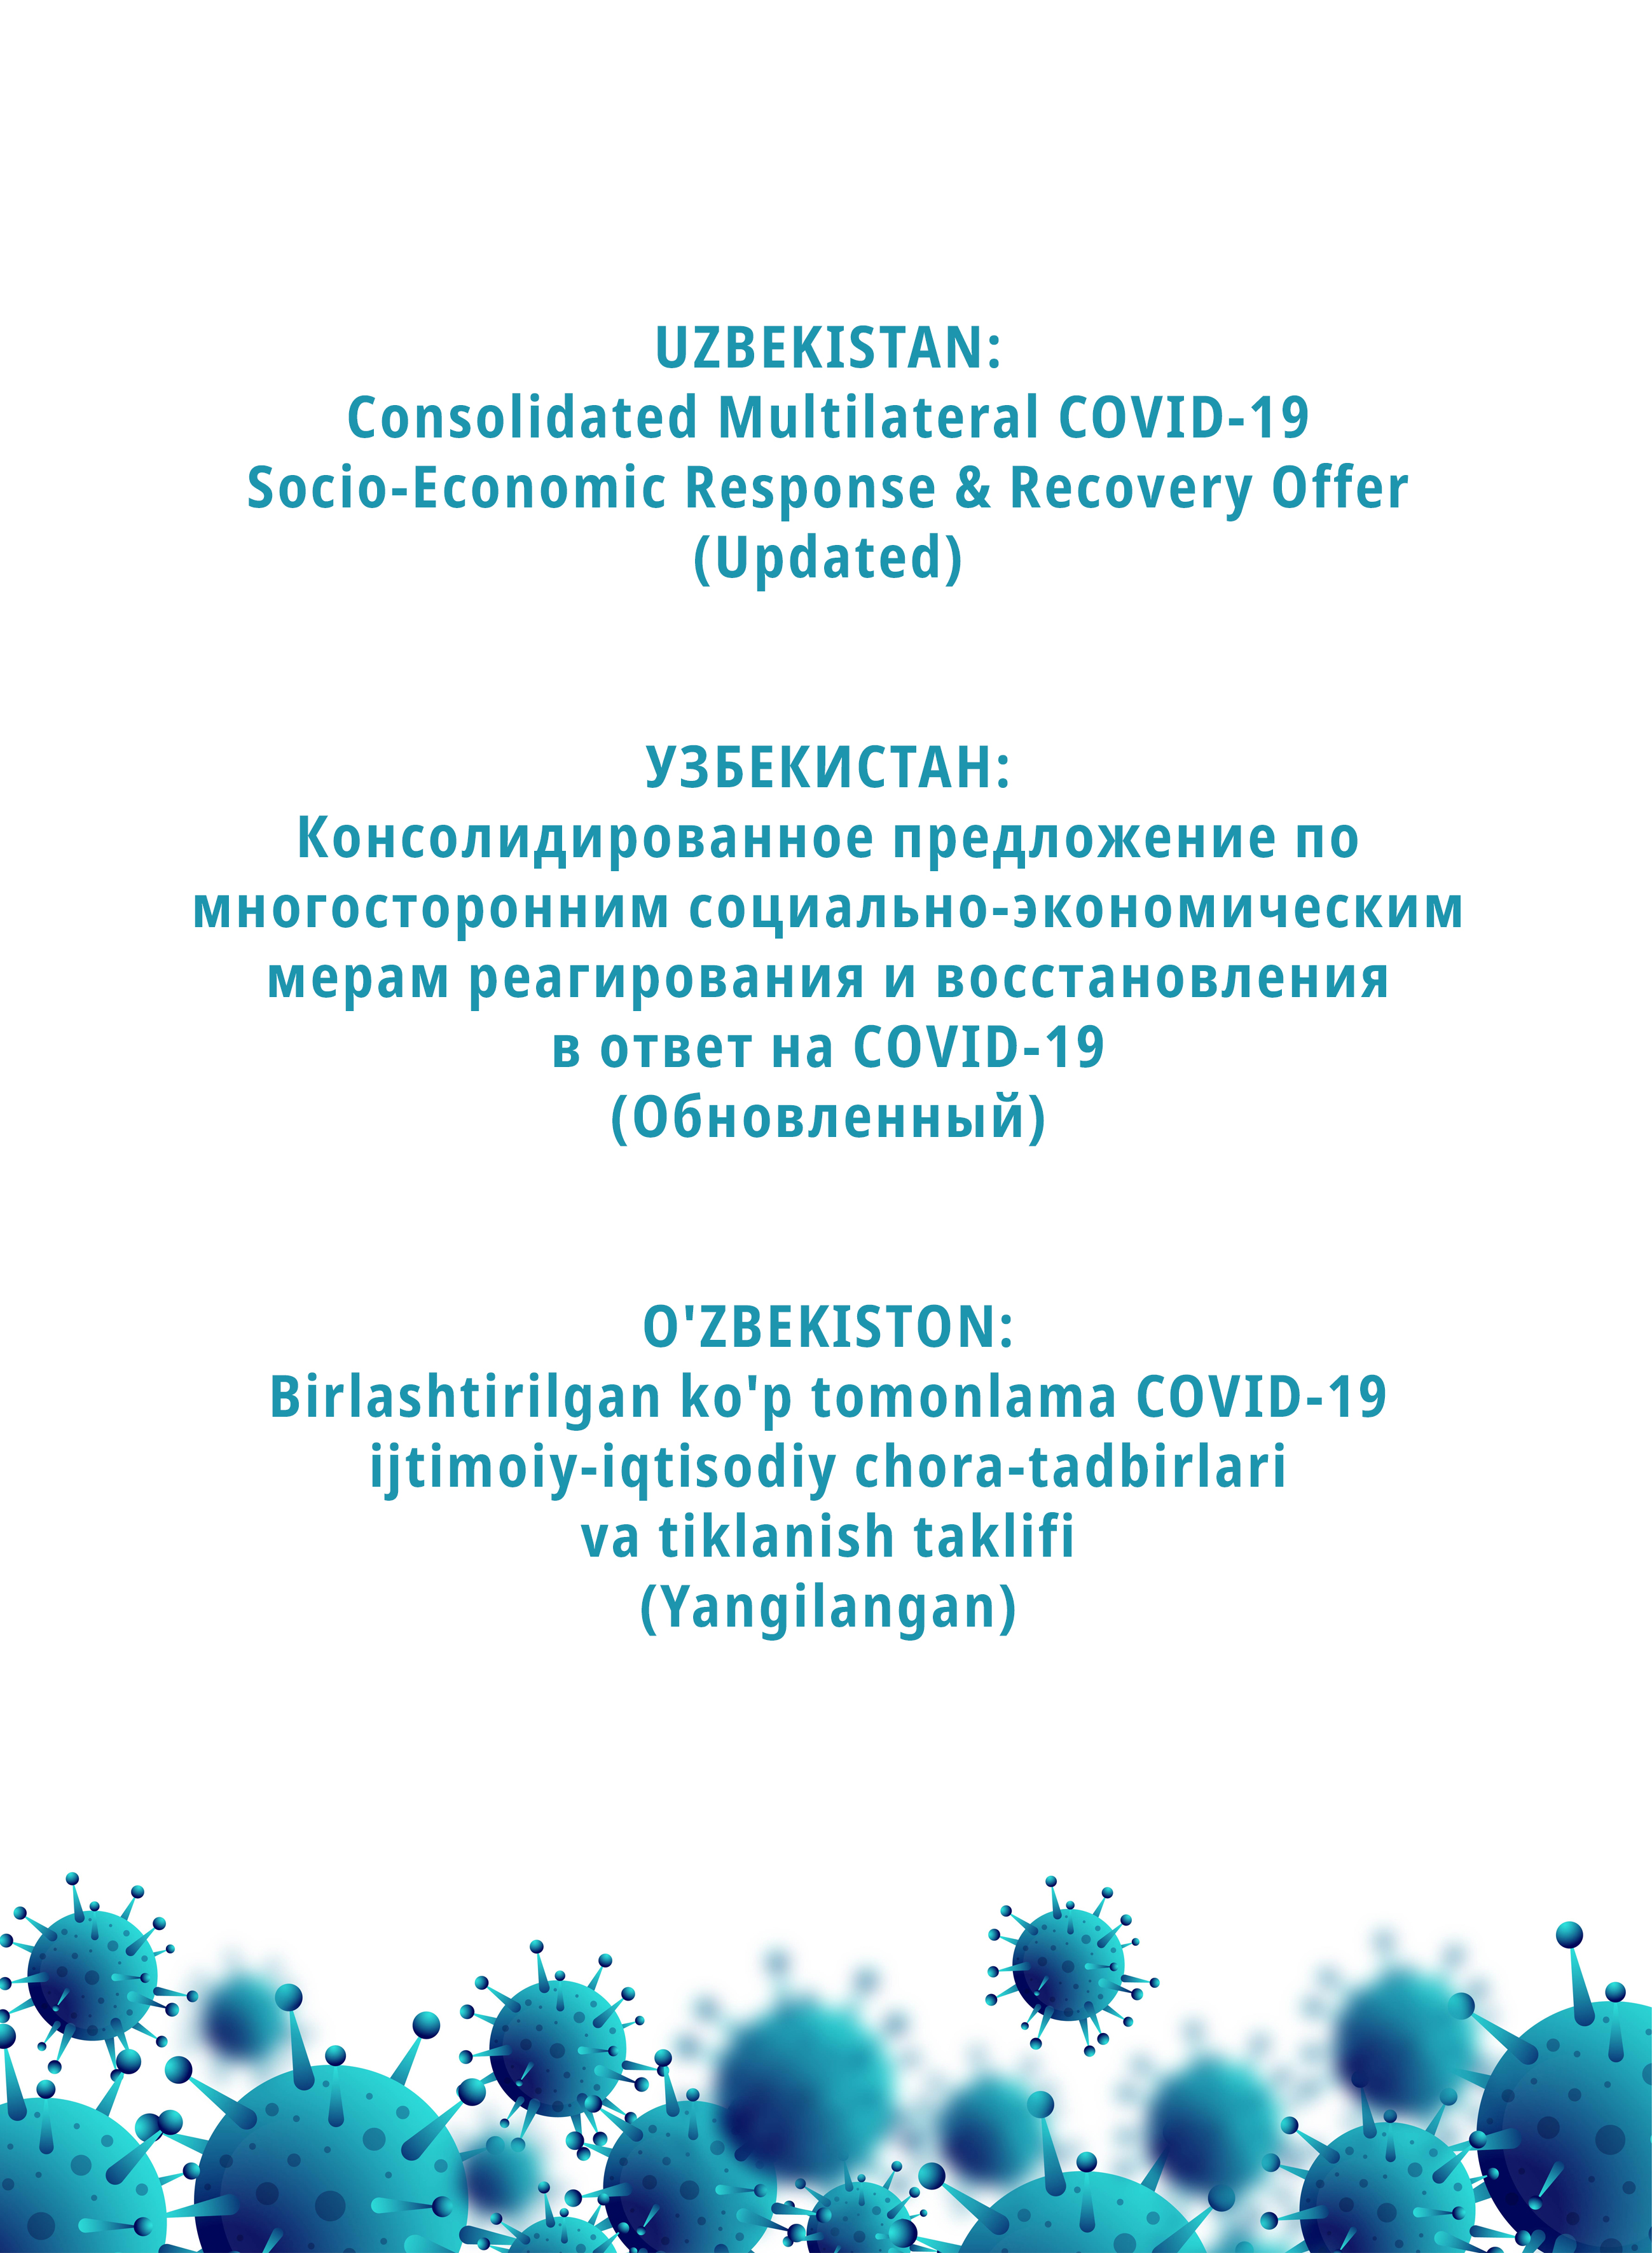 Update on Consolidated Multilateral COVID-19 Socio-Economic Response & Recovery Offer for Uzbekistan